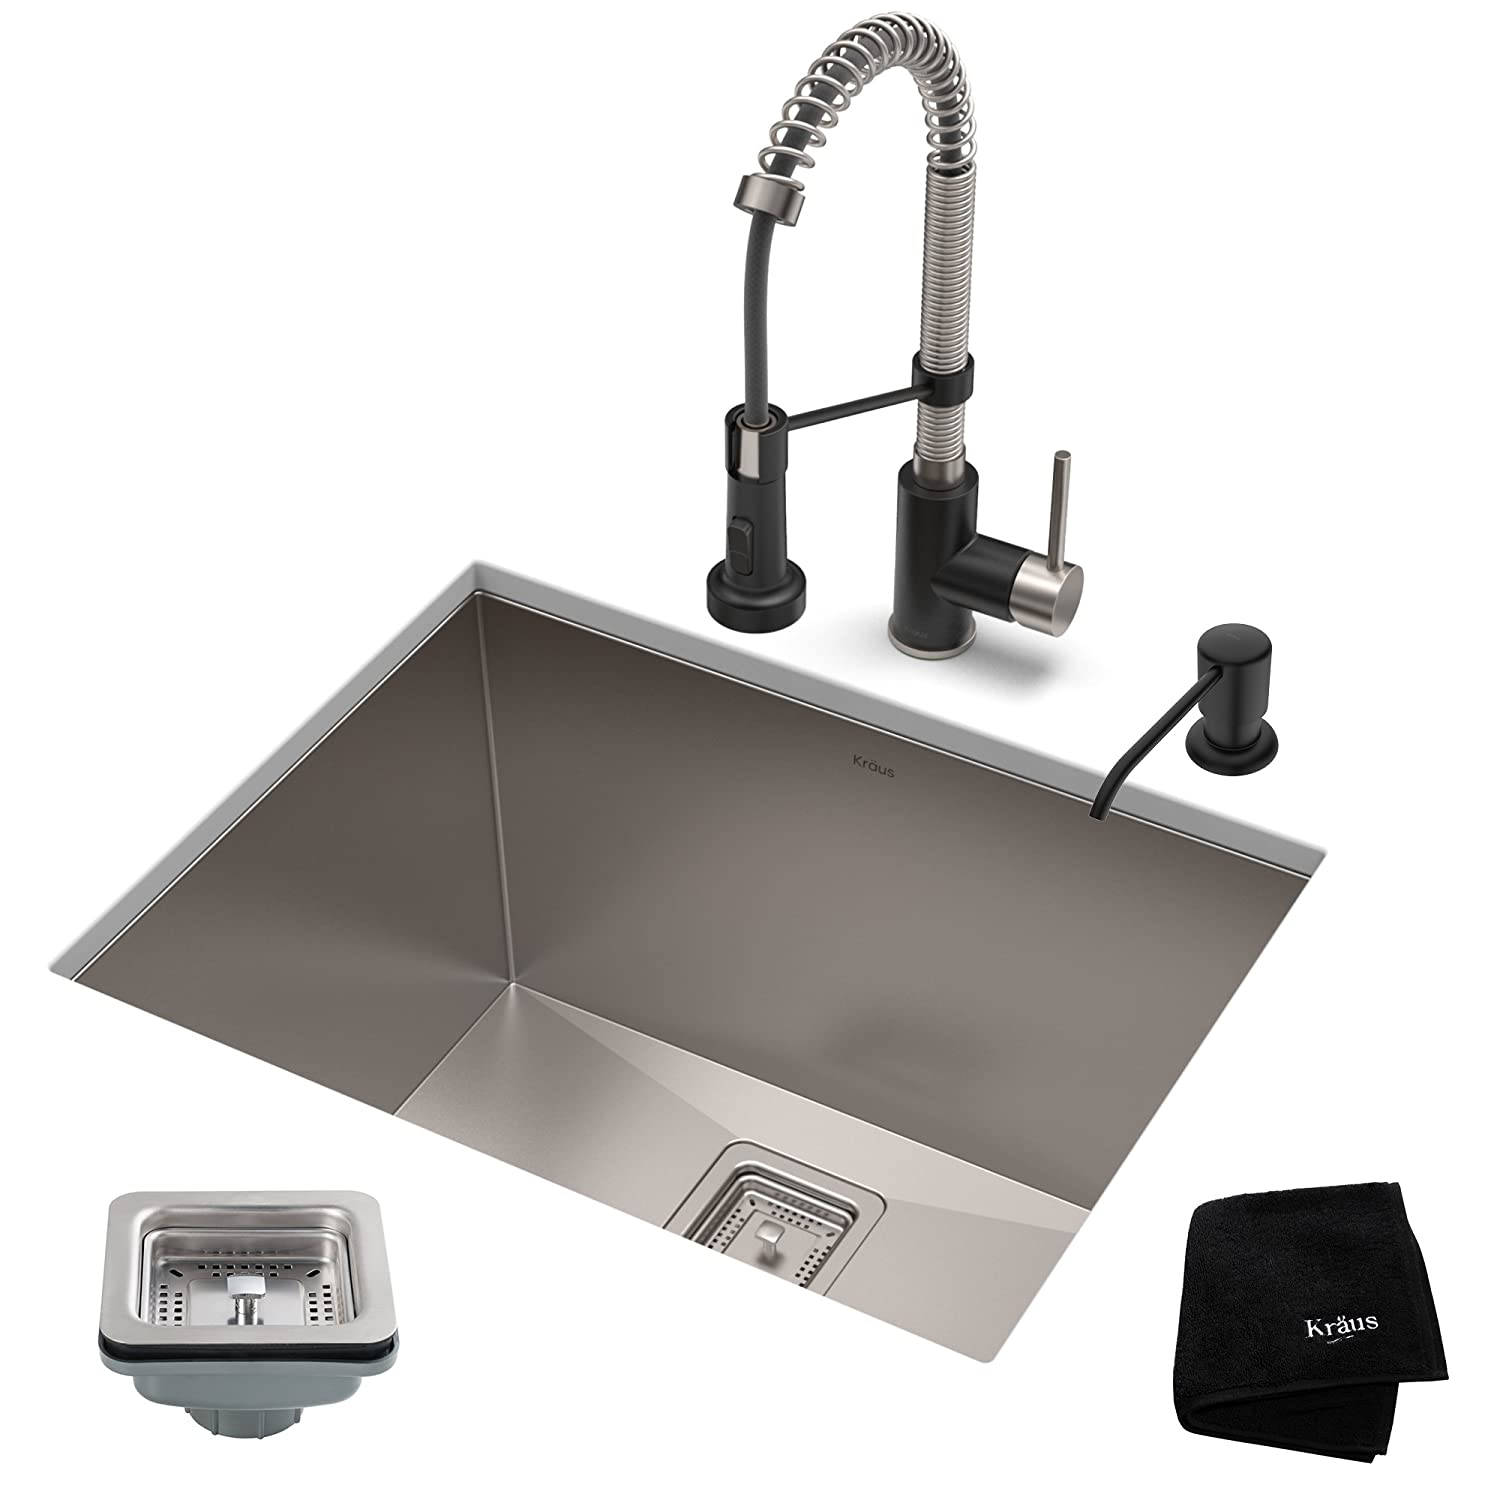 KRAUS KHU24L-1610-53SSMB Set with Pax Laundry Utility Sink and Bolden Commercial Pull Faucet in Stainless Steel Matte Black Kitchen Sink & Faucet Combo 24 Inch